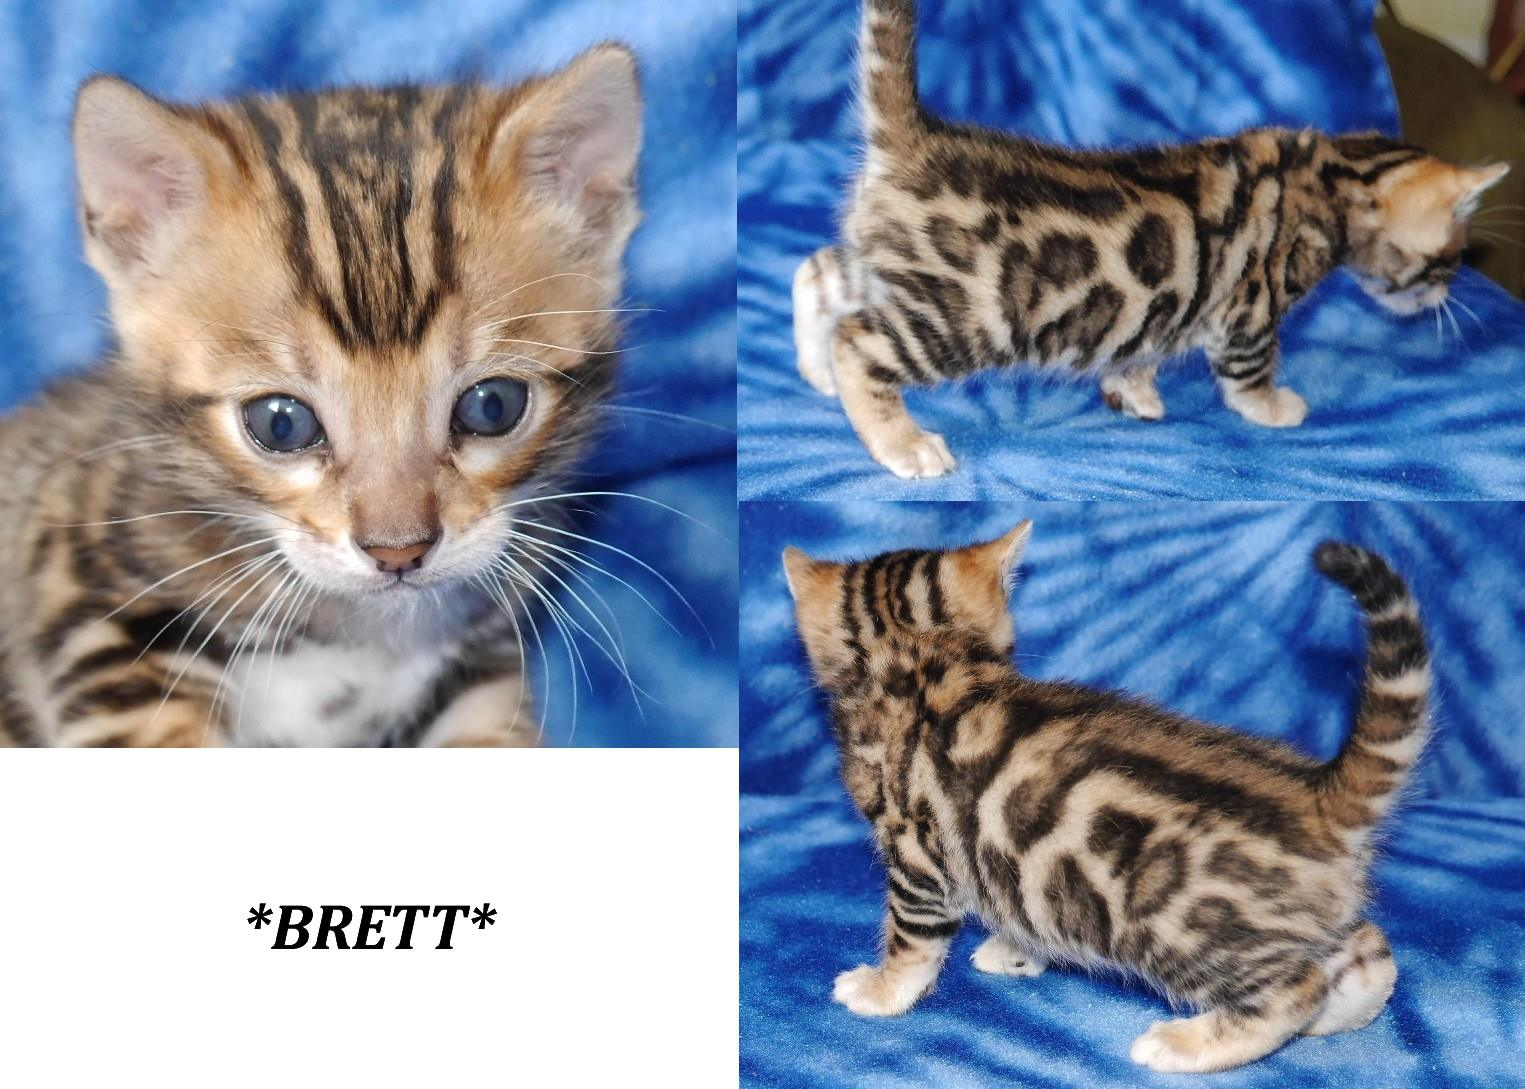 Brett - Brown Rosetted Bengal Kitten